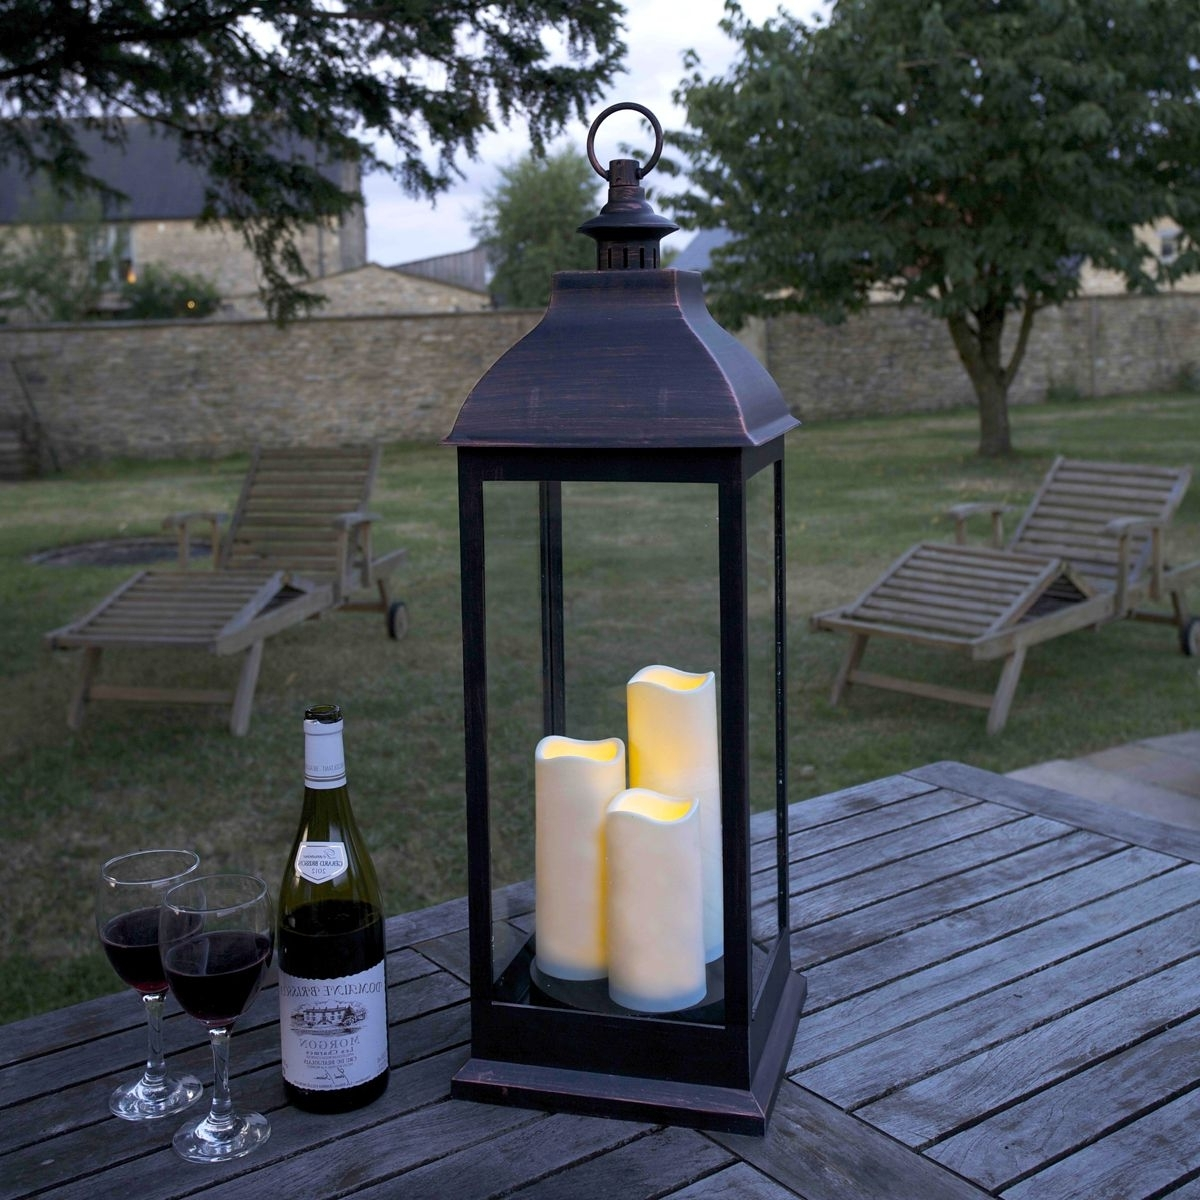 Outdoor Lanterns With Led Candles Within 2019 Giant Copper Look Led Lantern (View 15 of 20)